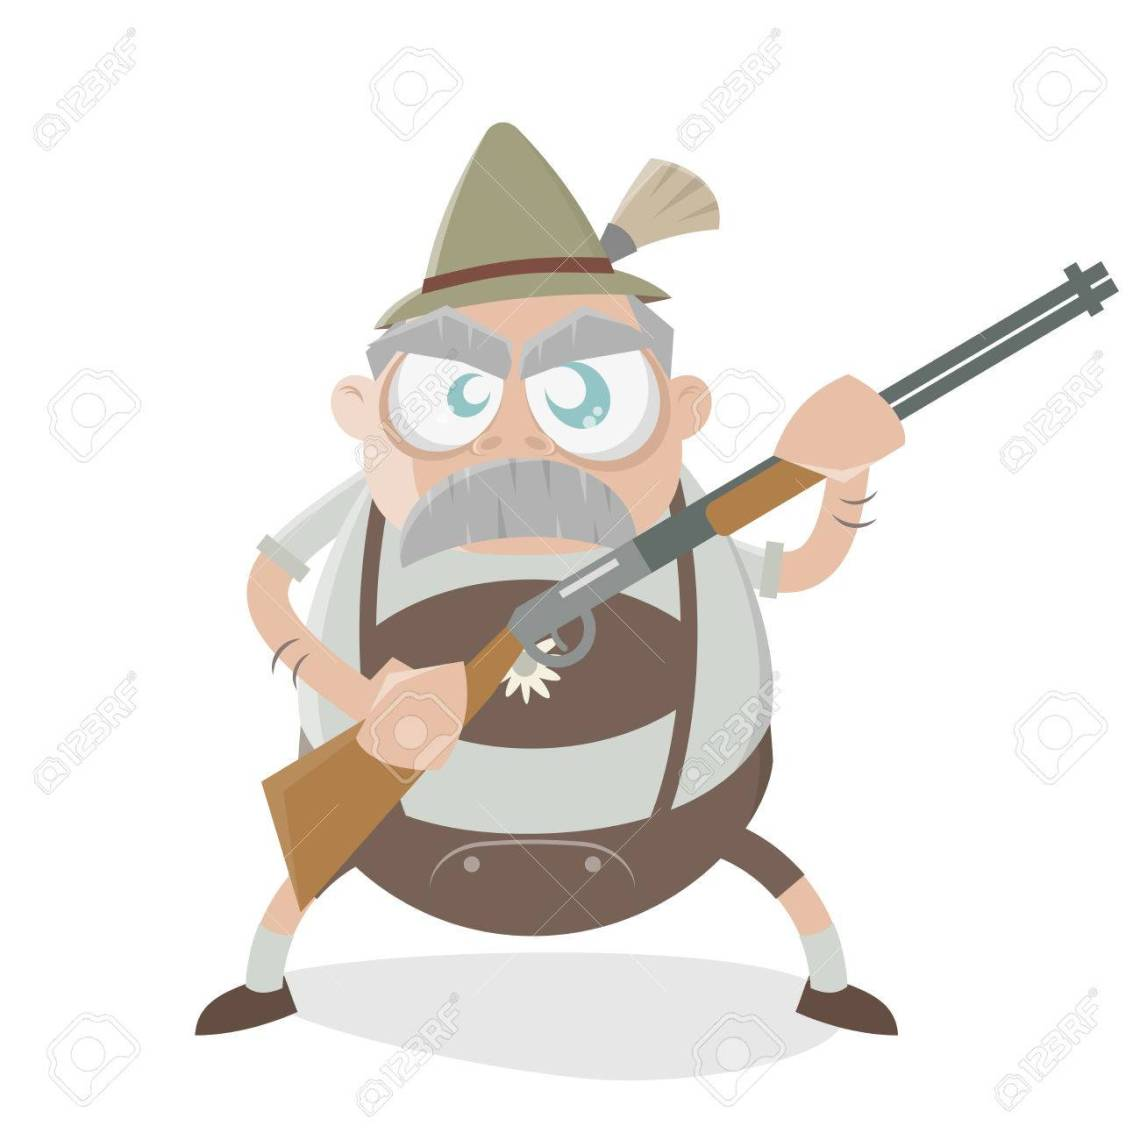 39198265-angry-bavarian-man-with-gun-Stock-Vector